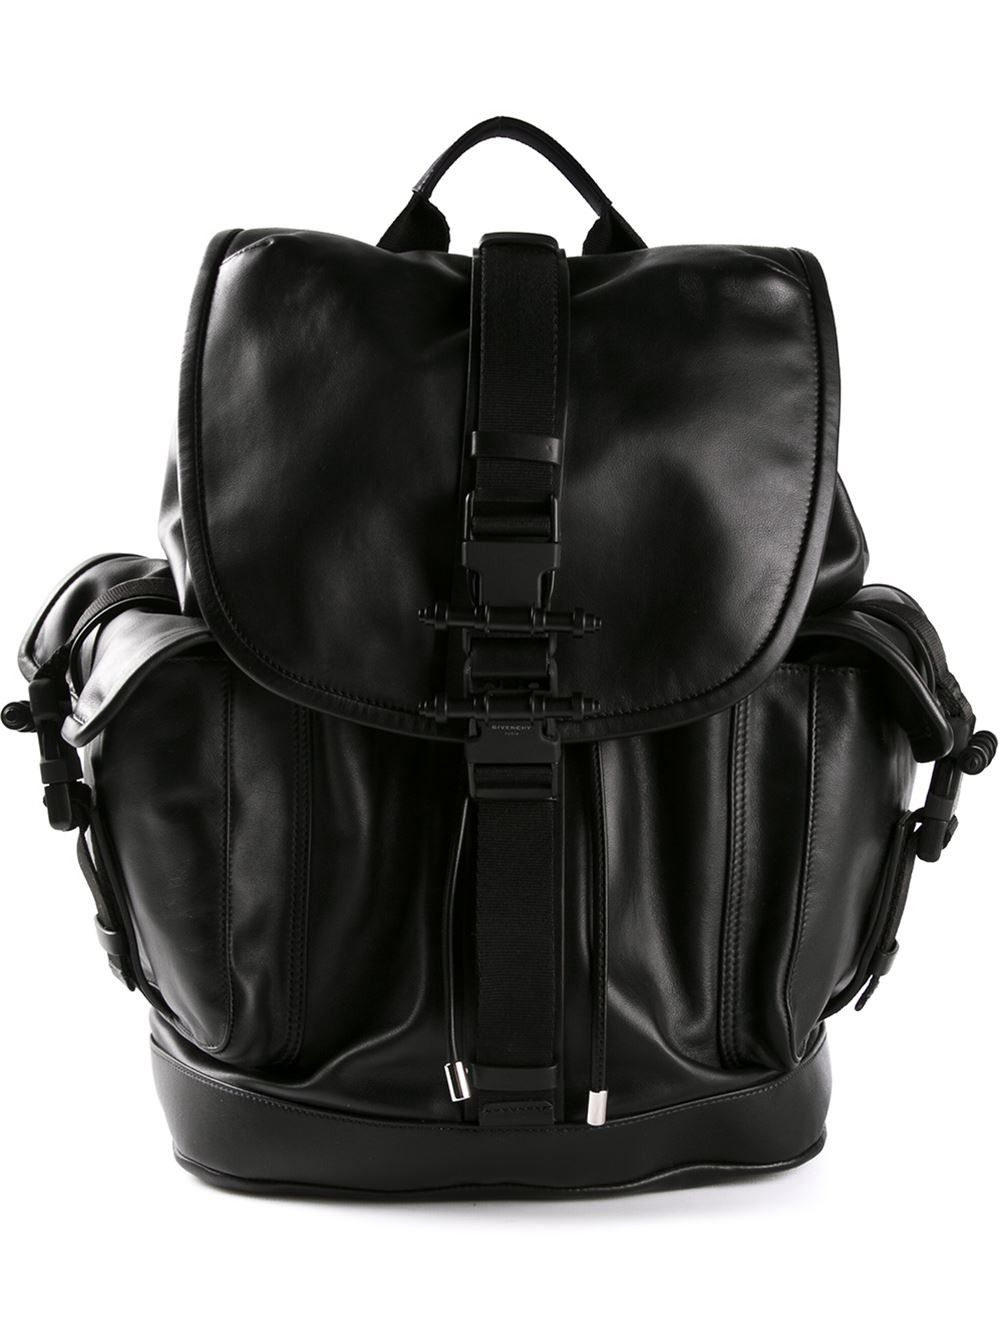 GIVENCHY  Obsedia  Backpack.  givenchy  bags  leather  backpacks ... bd4443718d1e0